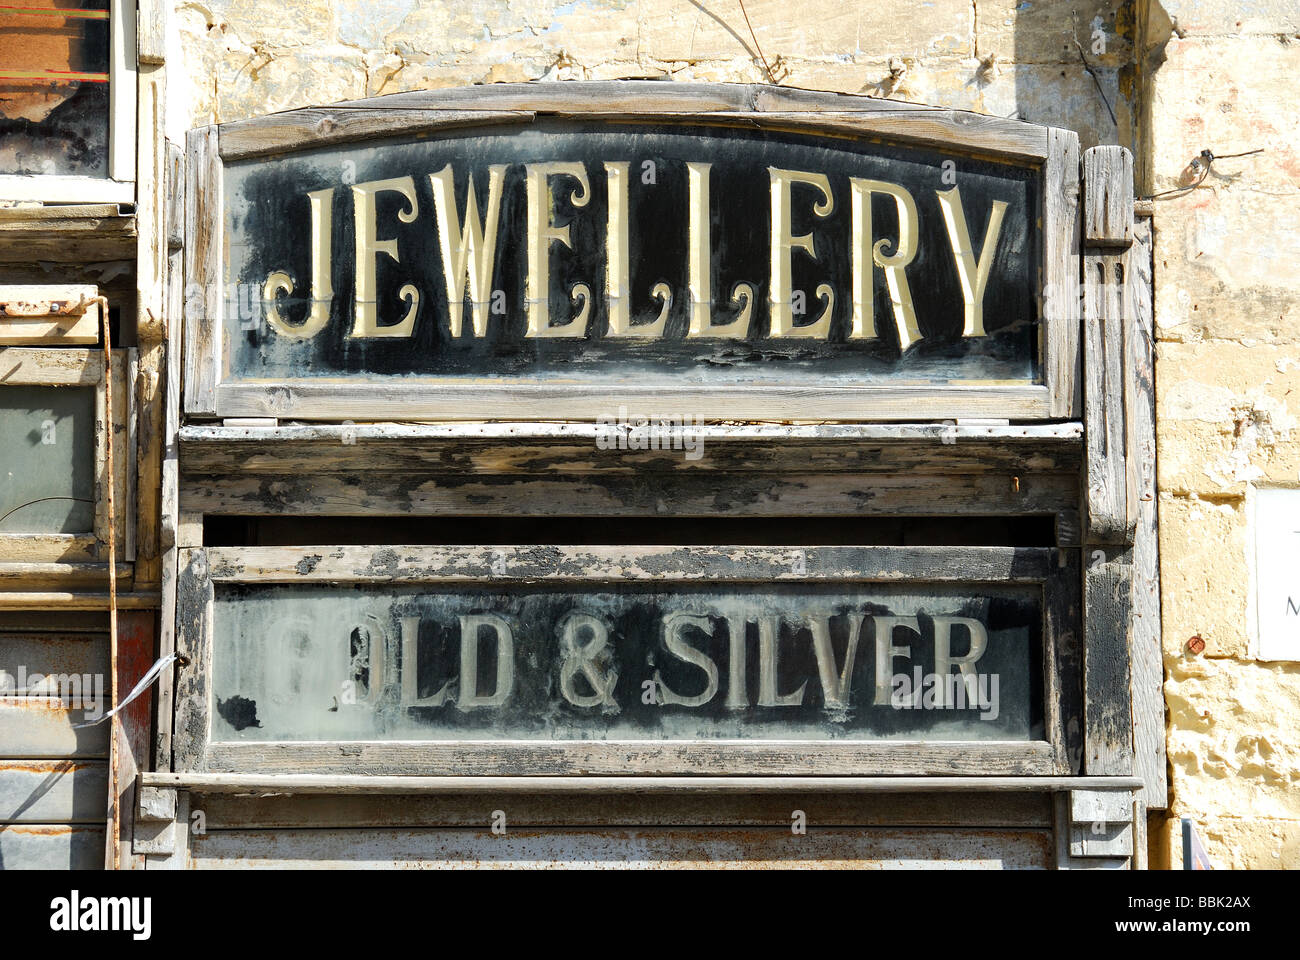 malta an old wooden sign for a jewellery shop on